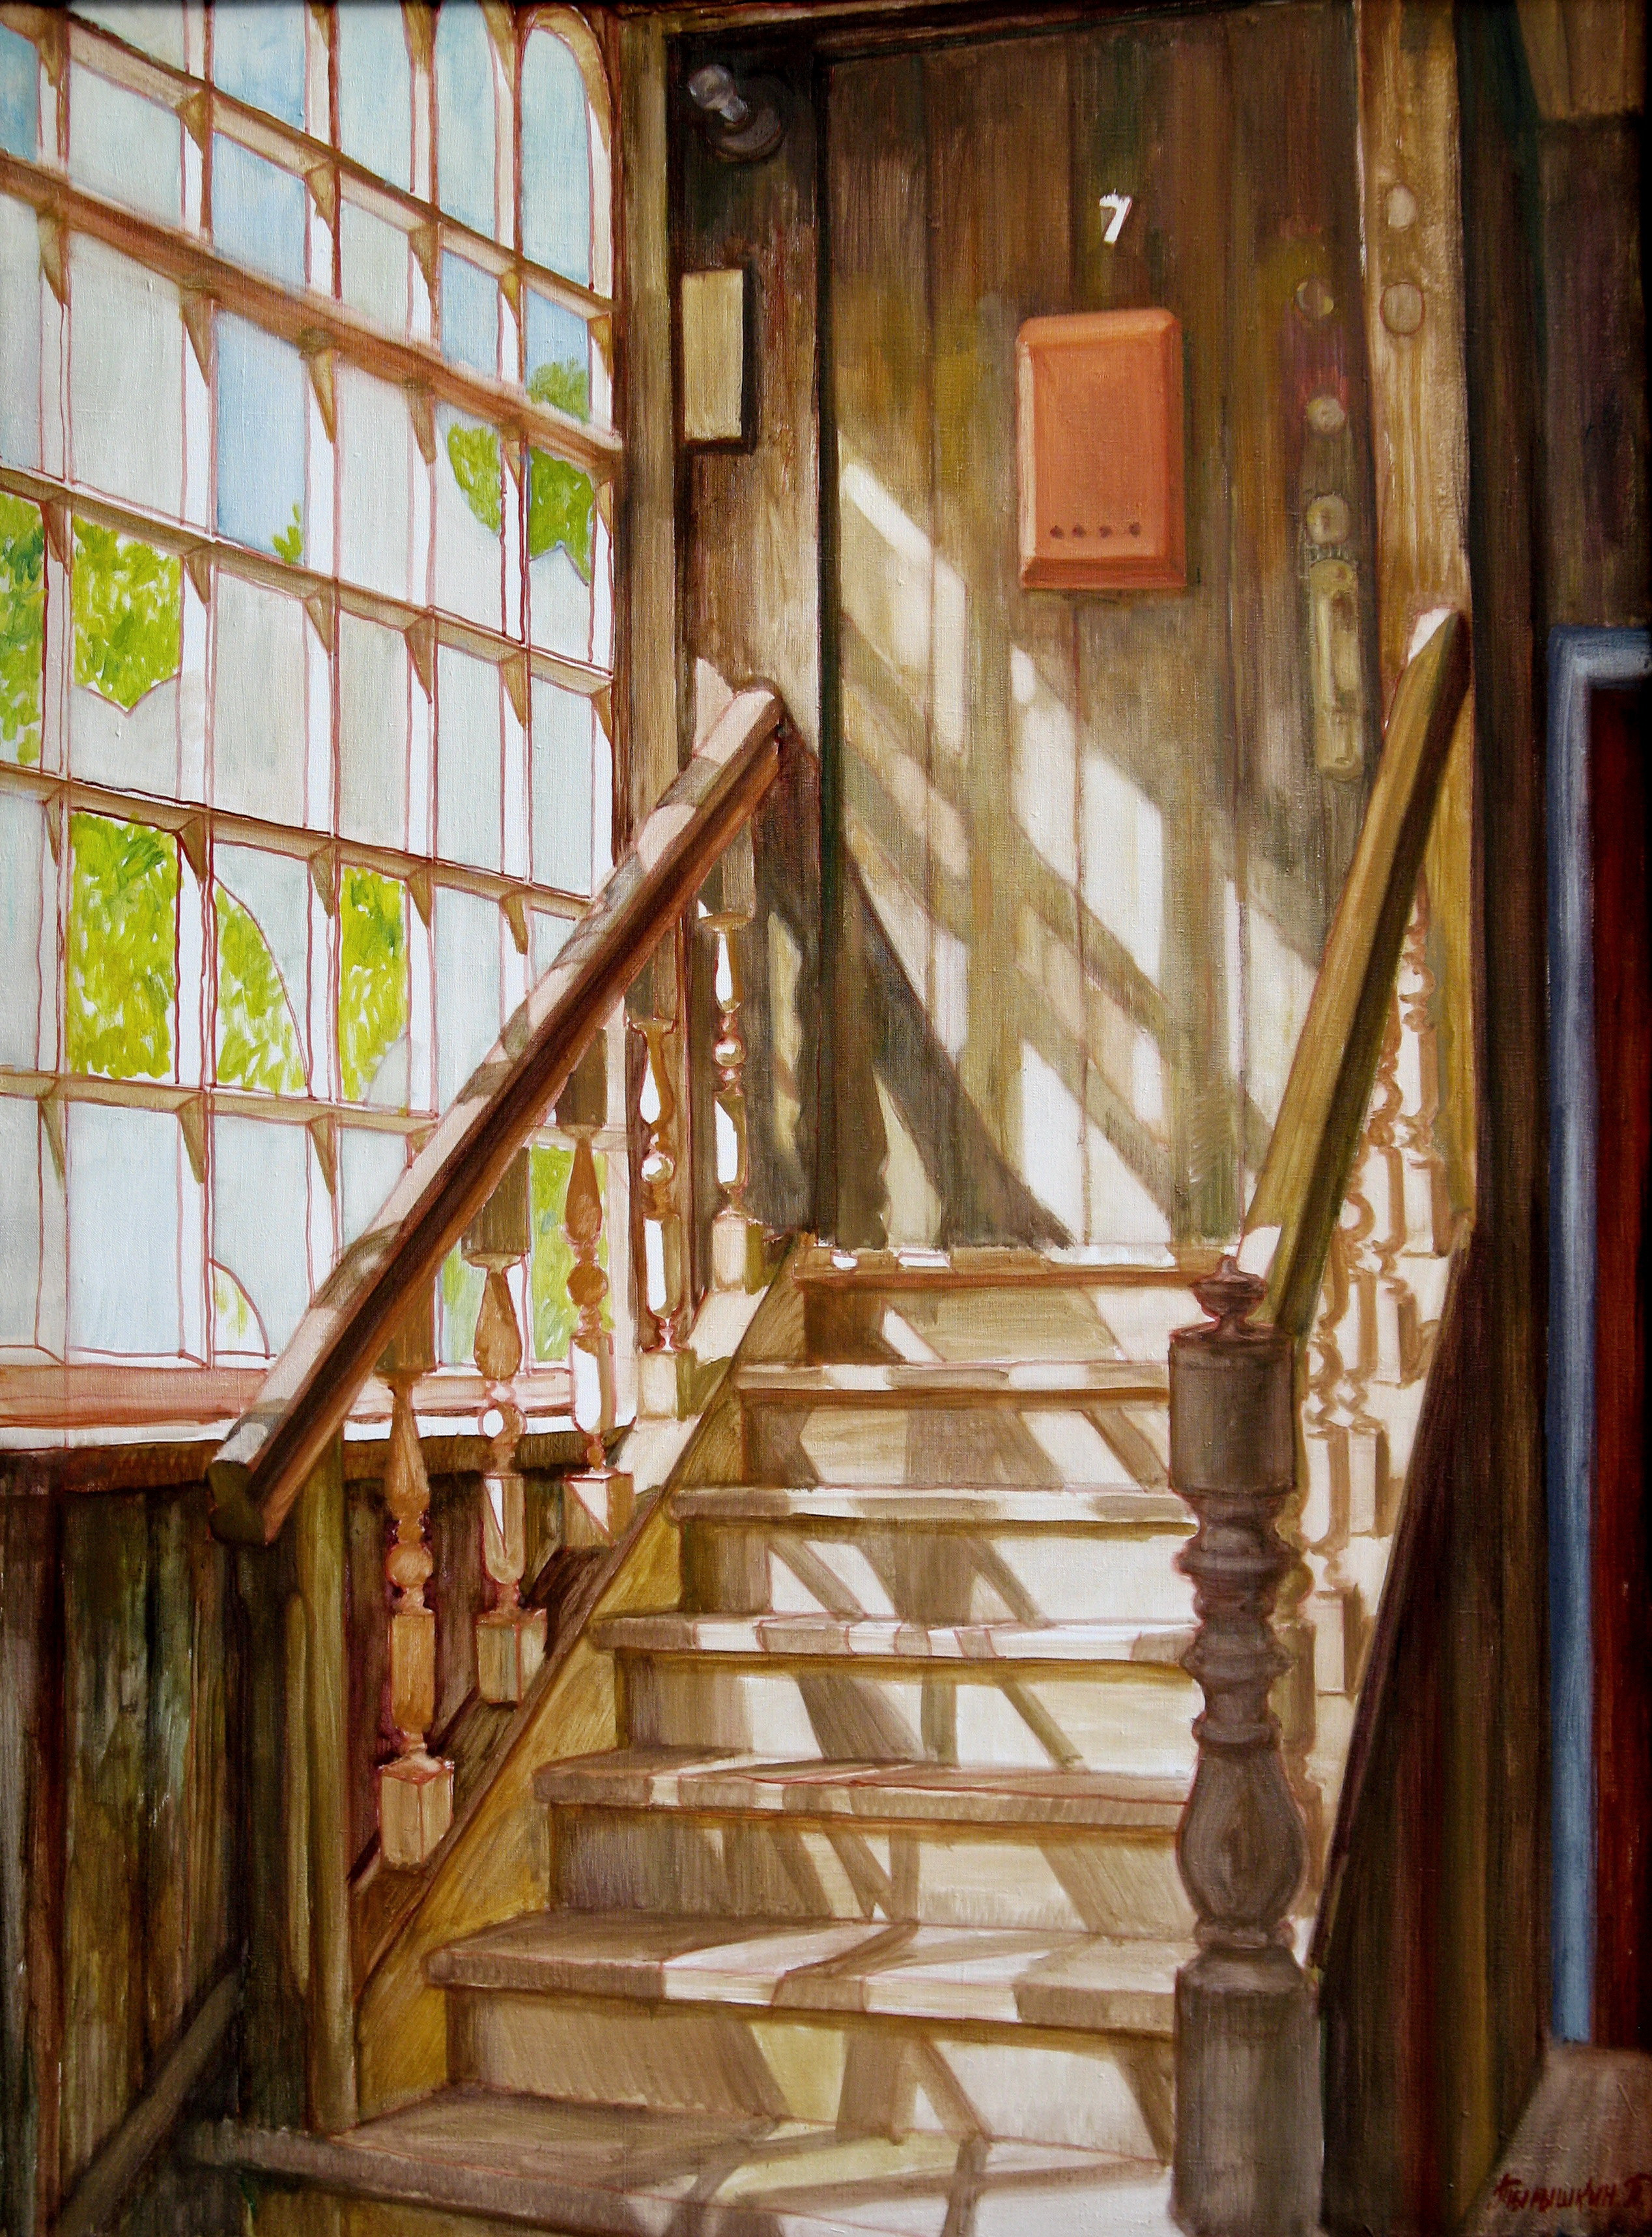 Stairs Oil Painting By Pavel Tyryshkin | absolutearts.com